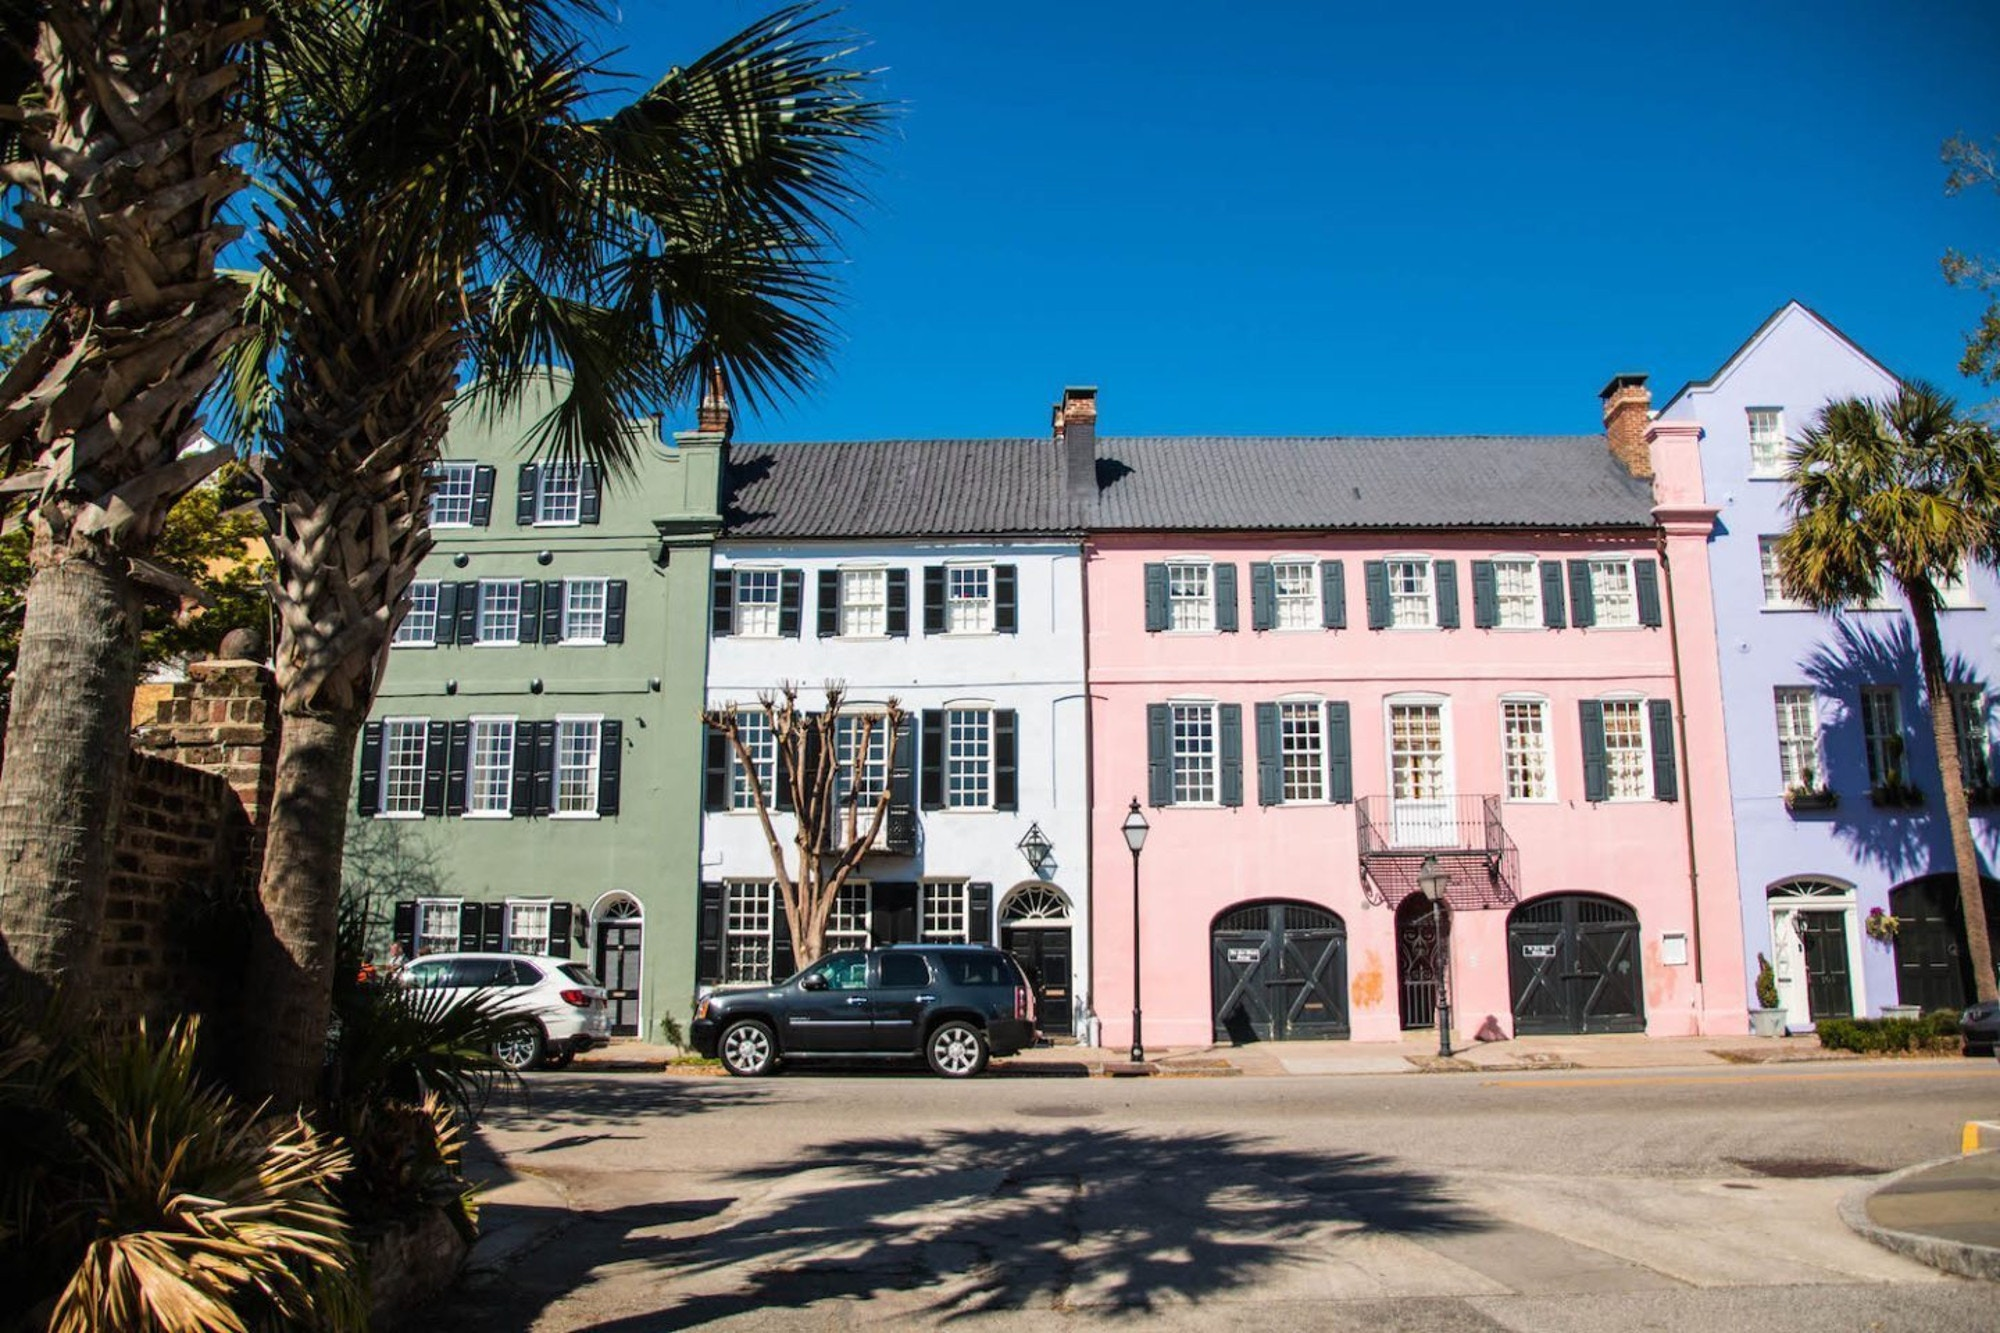 Exploring the colourful houses of Charleston's Rainbow Road © Holly Habeck